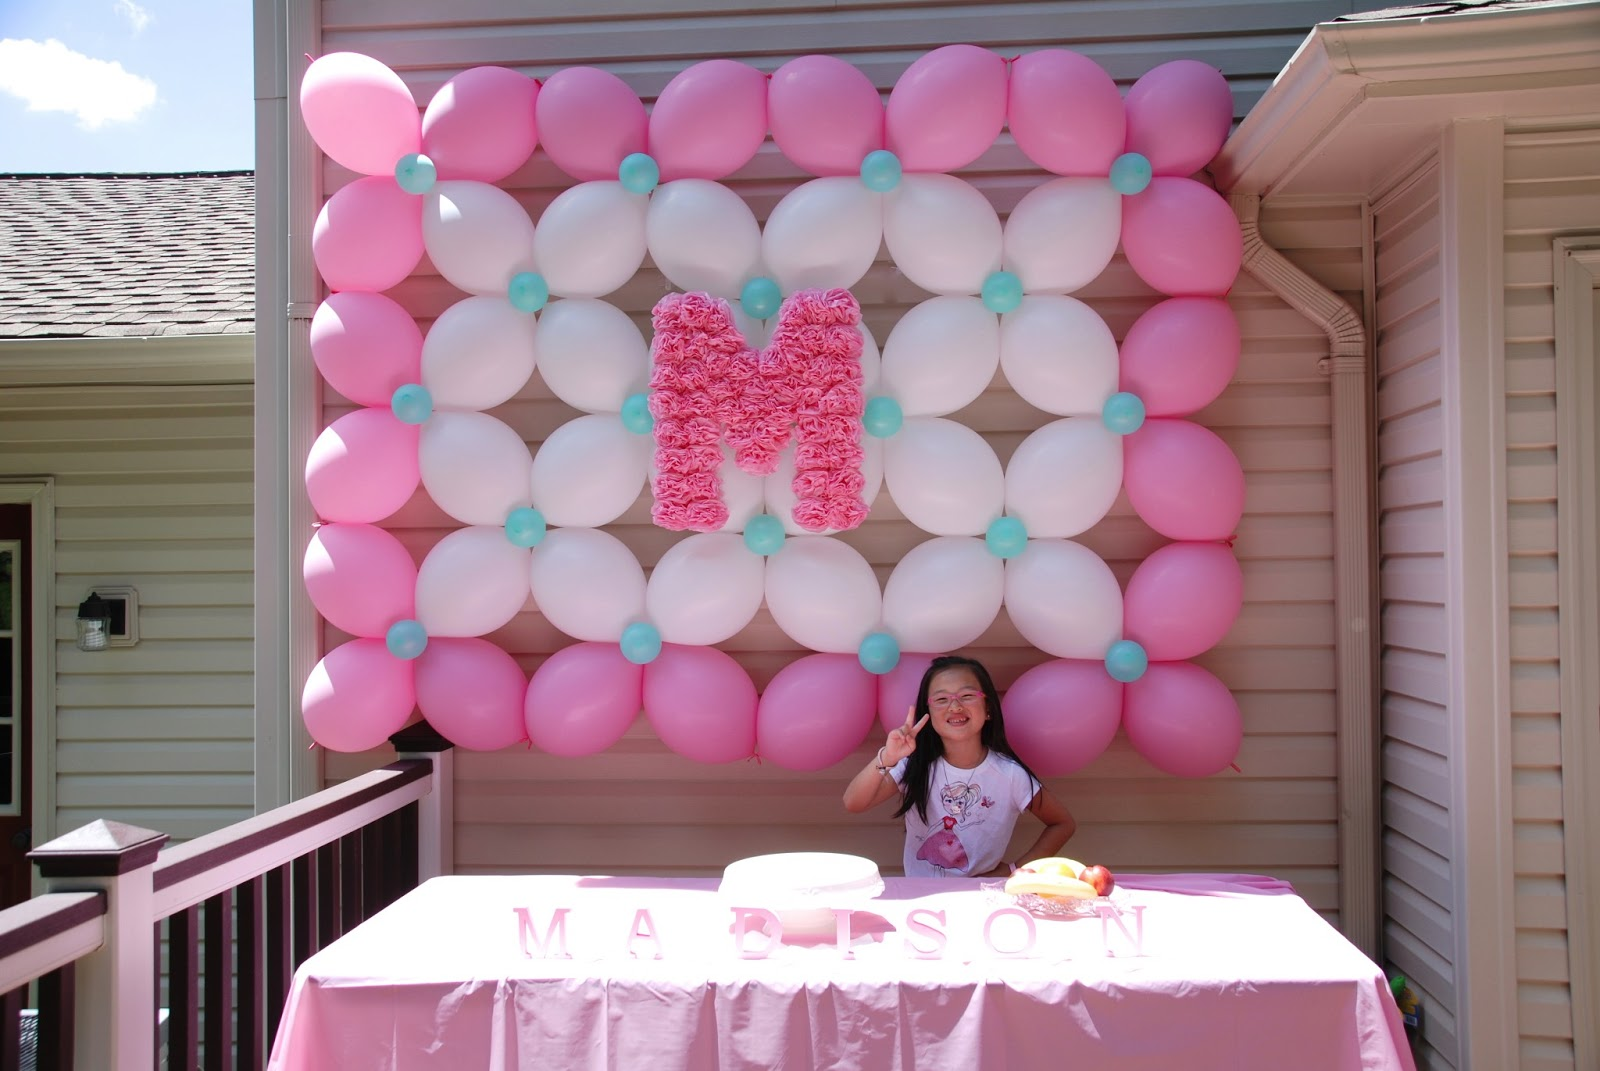 Madison 39 s 1st birthday party balloon decor twisting for Balloon decoration for 1st birthday party